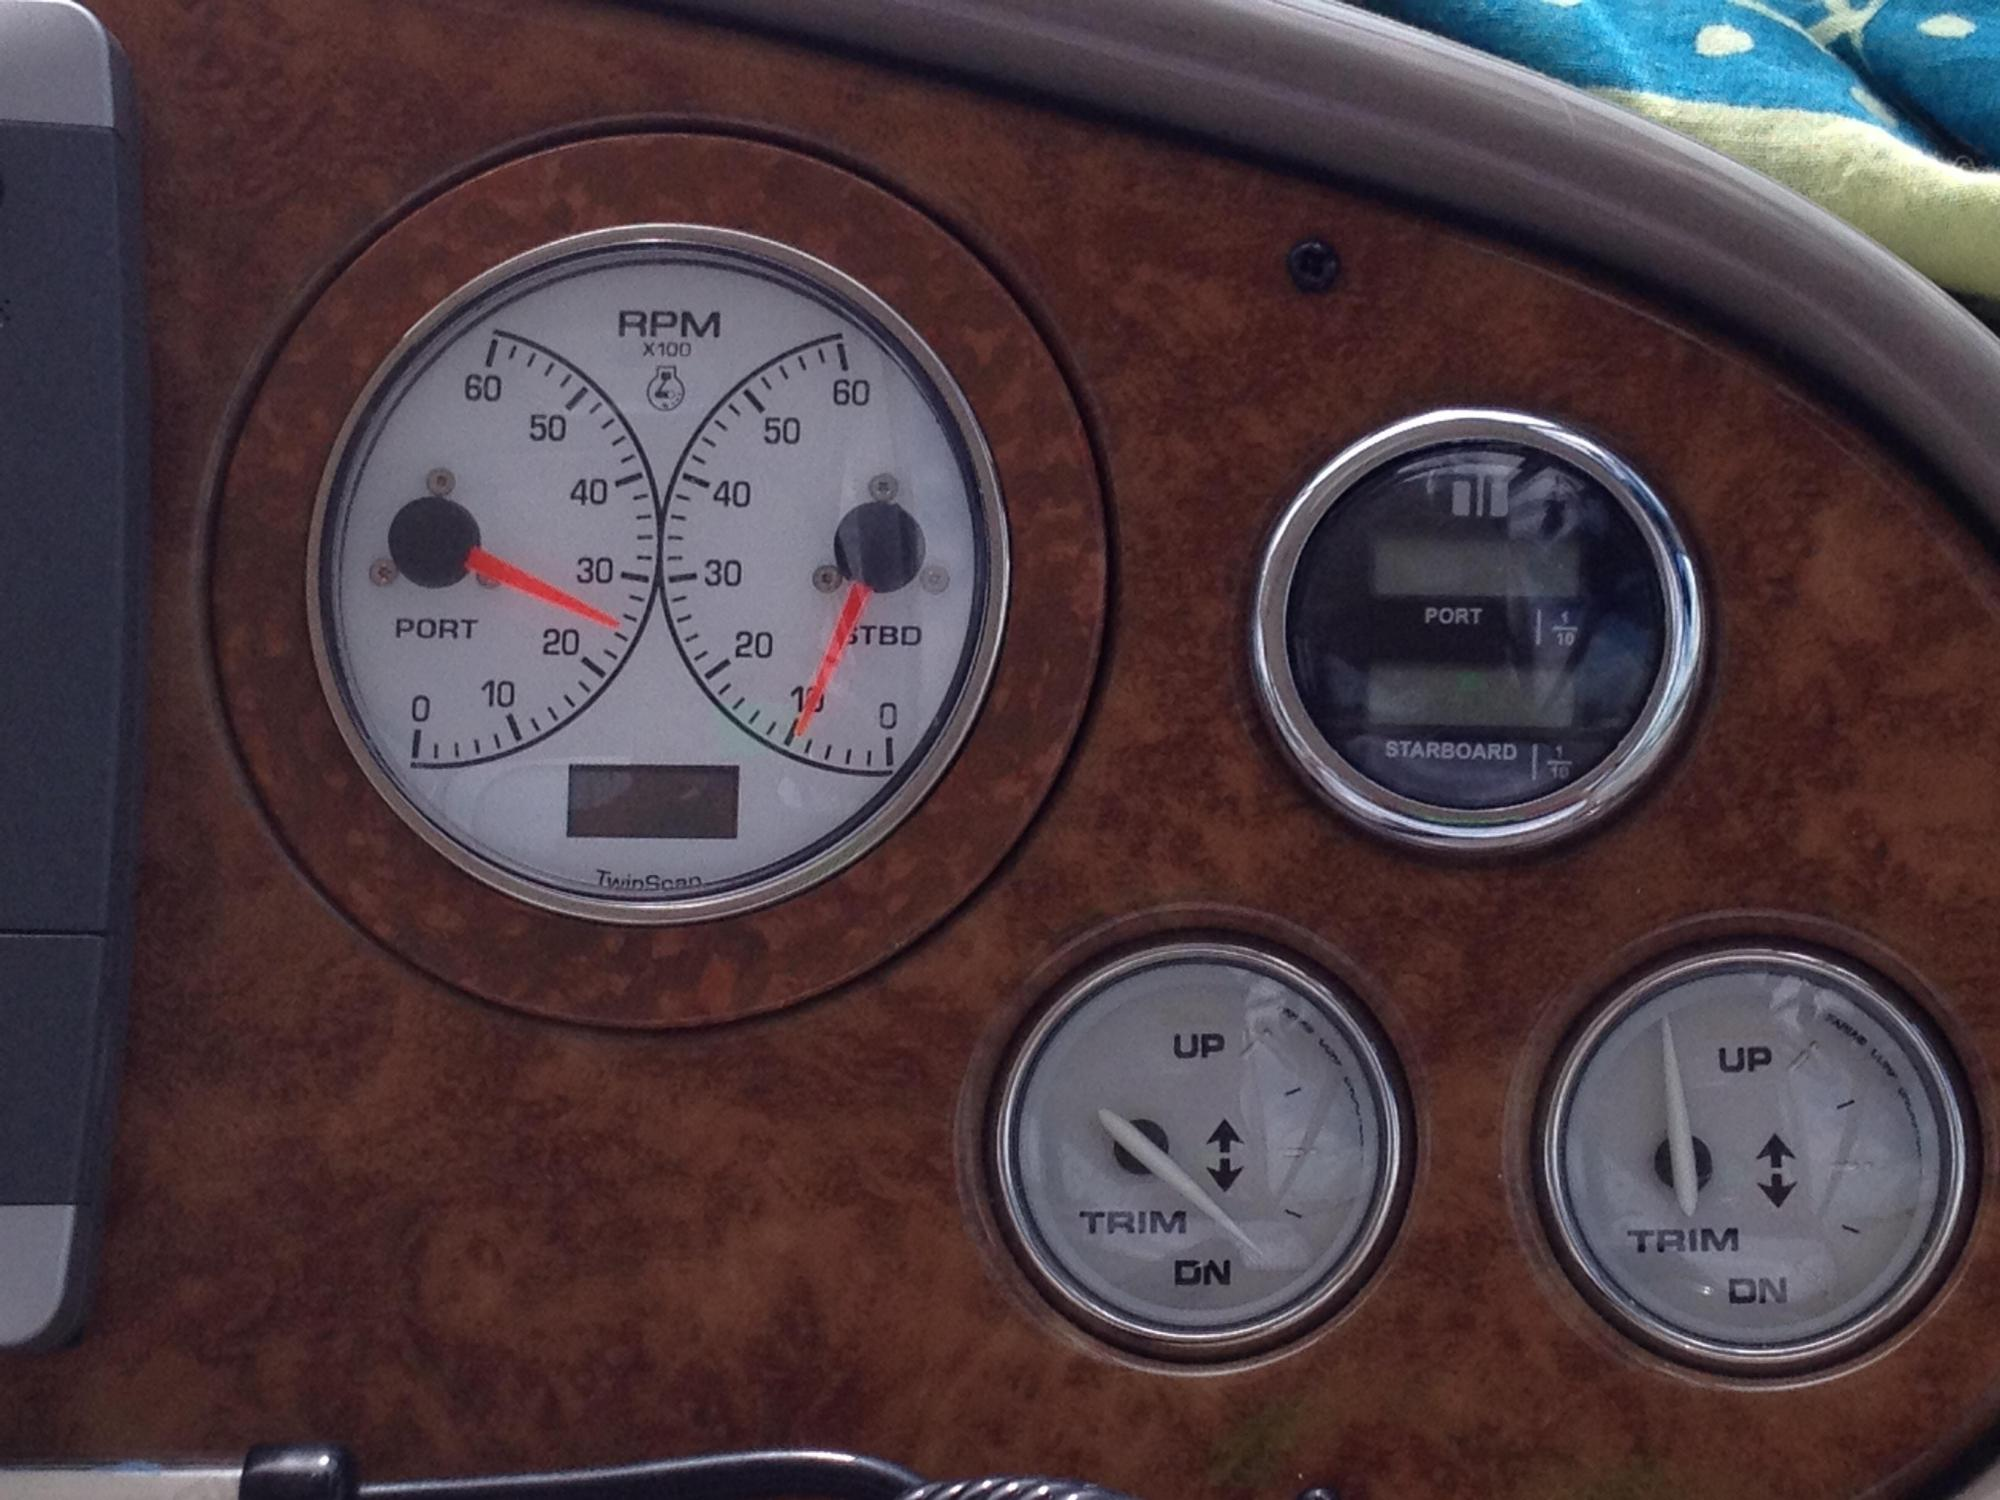 hight resolution of faria tachometer hourmeter gauge replacement rinker boats image jpg 1 3m